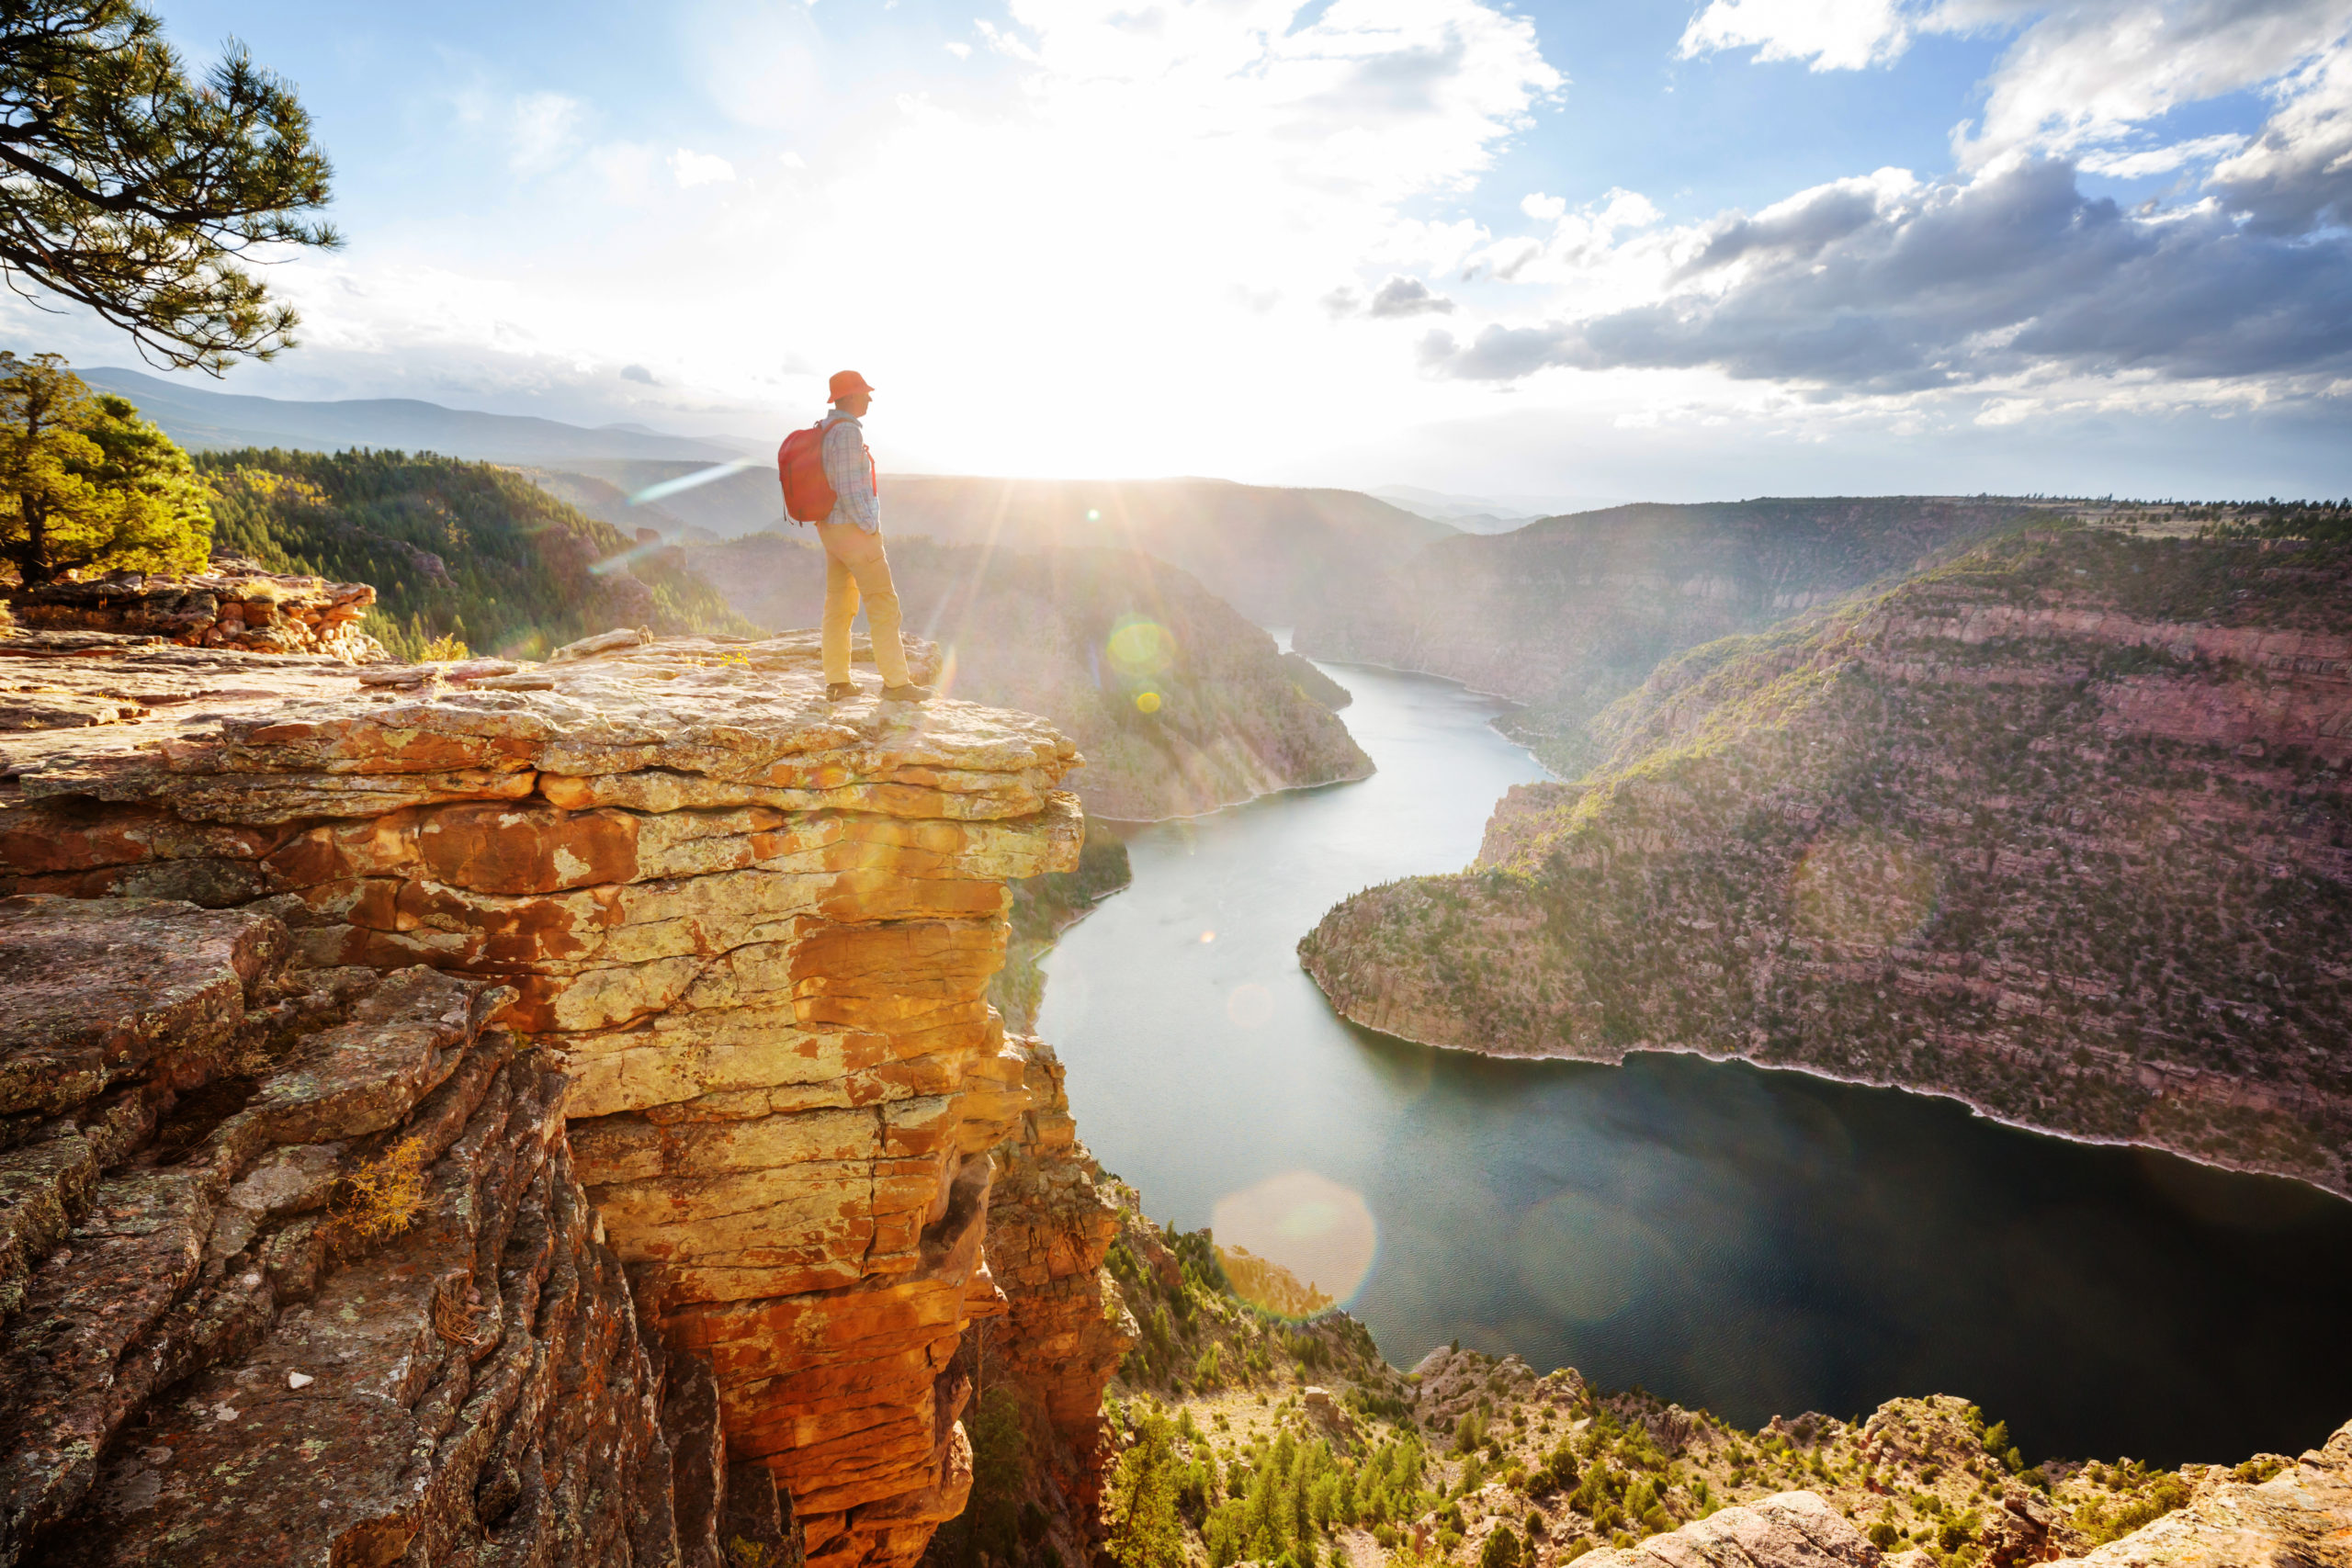 a man stands on a cliff overlooking Flaming Gorge Reservoir